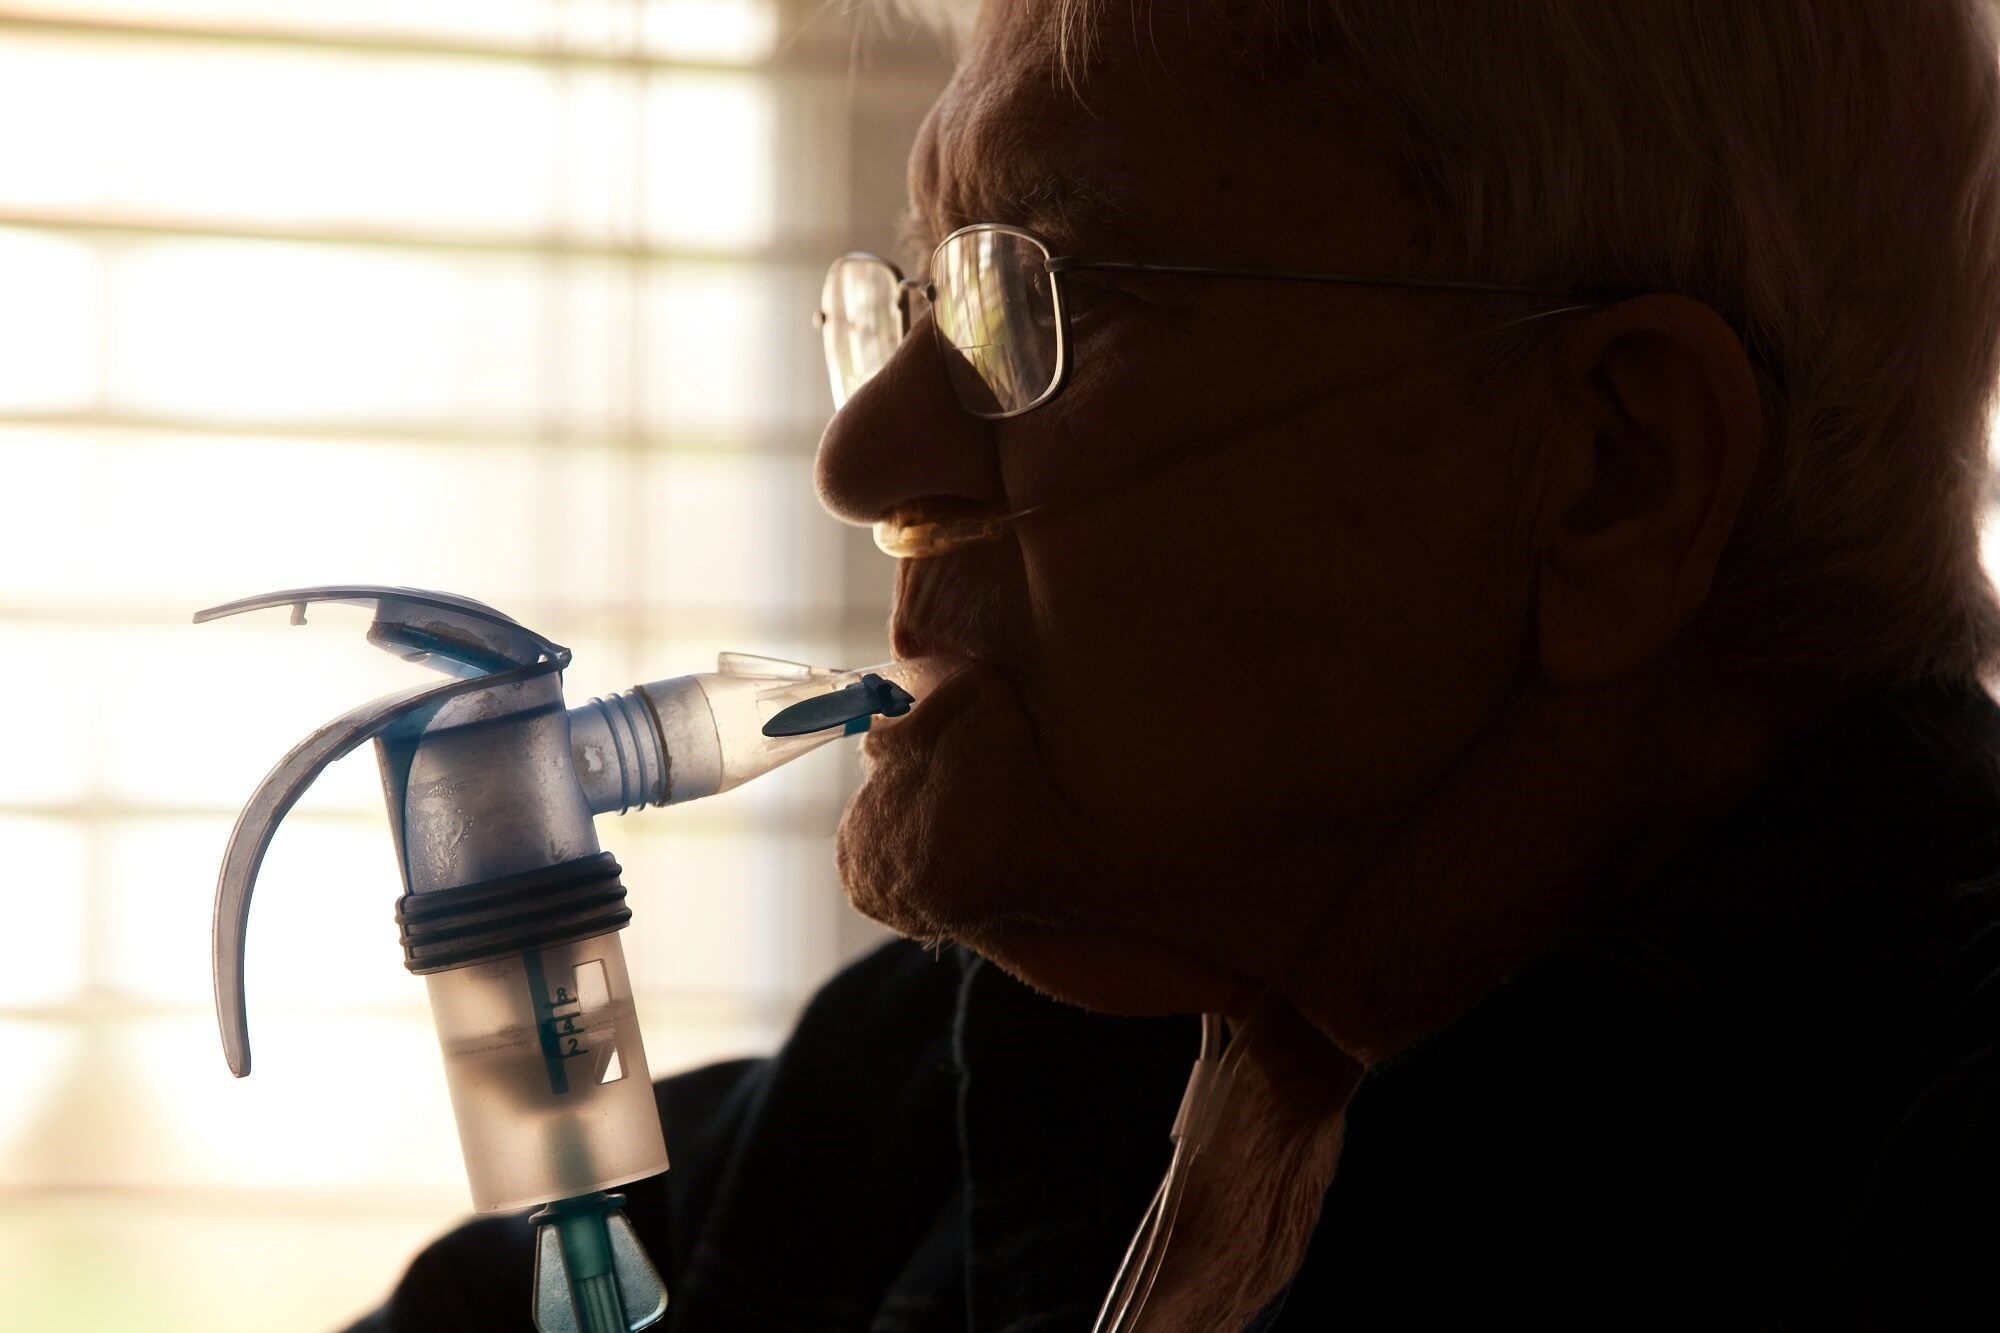 Cognitive Therapy Helps Reduce Anxiety in Patients With COPD